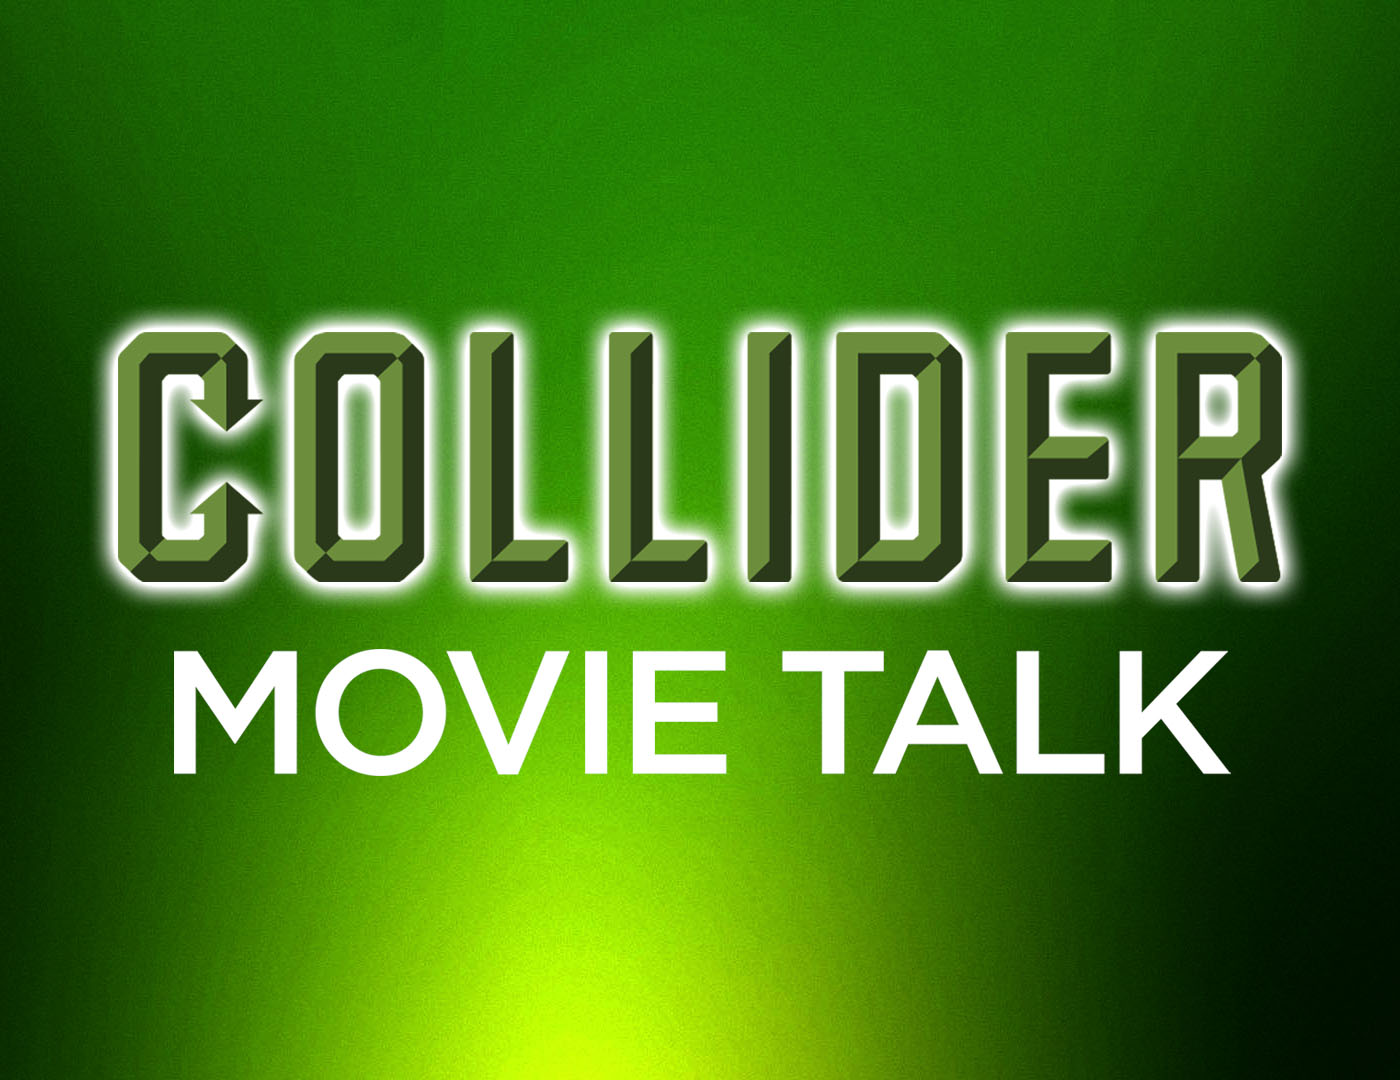 Doctor Strange Sneak Peek Video, Warcraft 2 Possibilities? - Collider Movie Talk